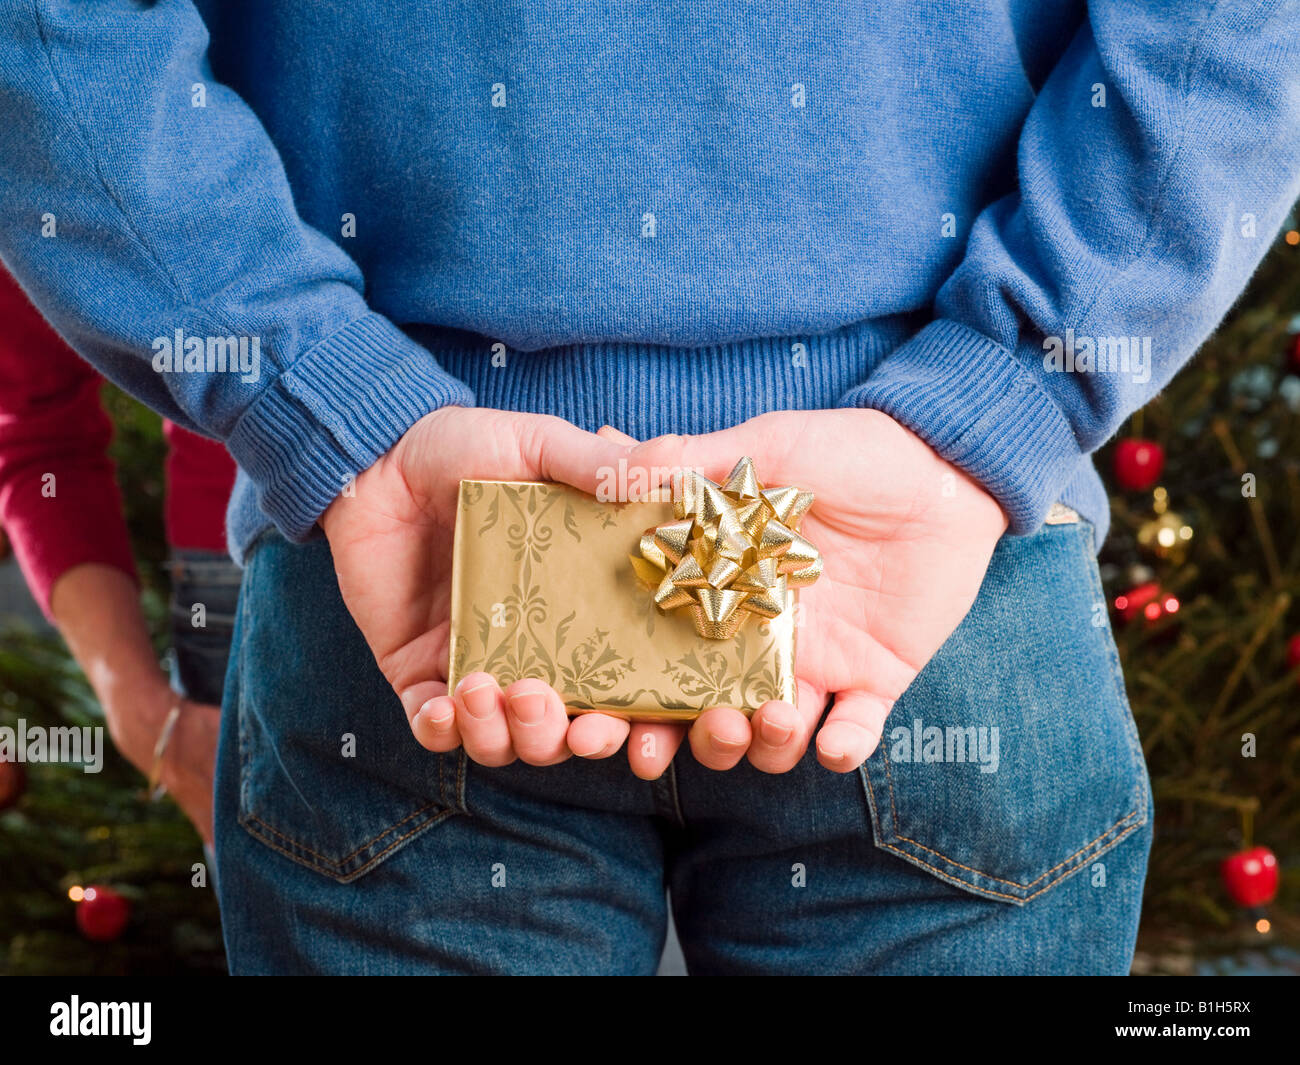 Man hiding a christmas present behind back - Stock Image